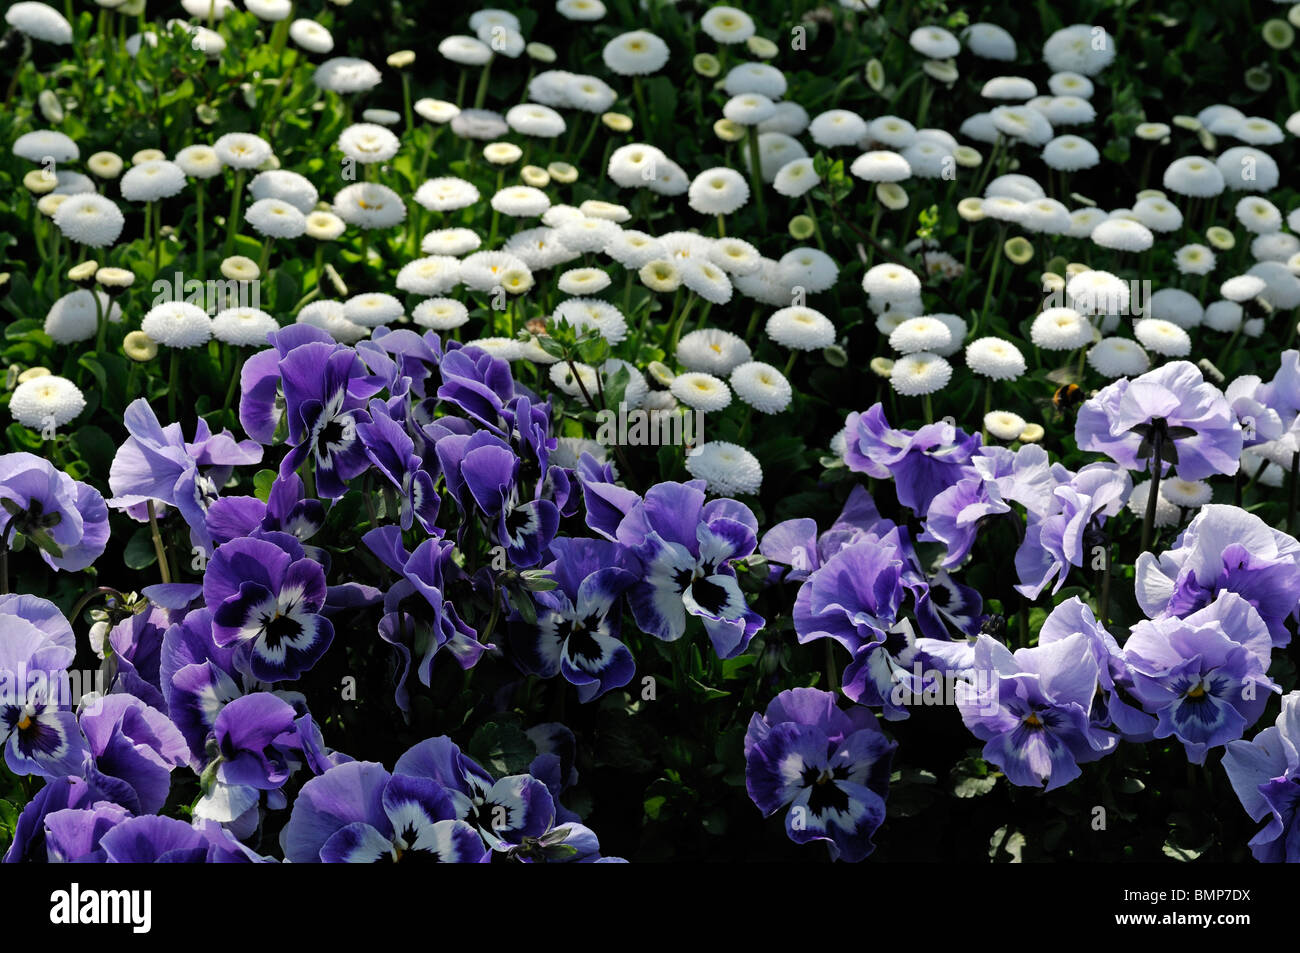 Viola x wittrockiana pansy joker light blue and bellis pomponette white mix mixed contrast contrasting flower bed - Stock Image